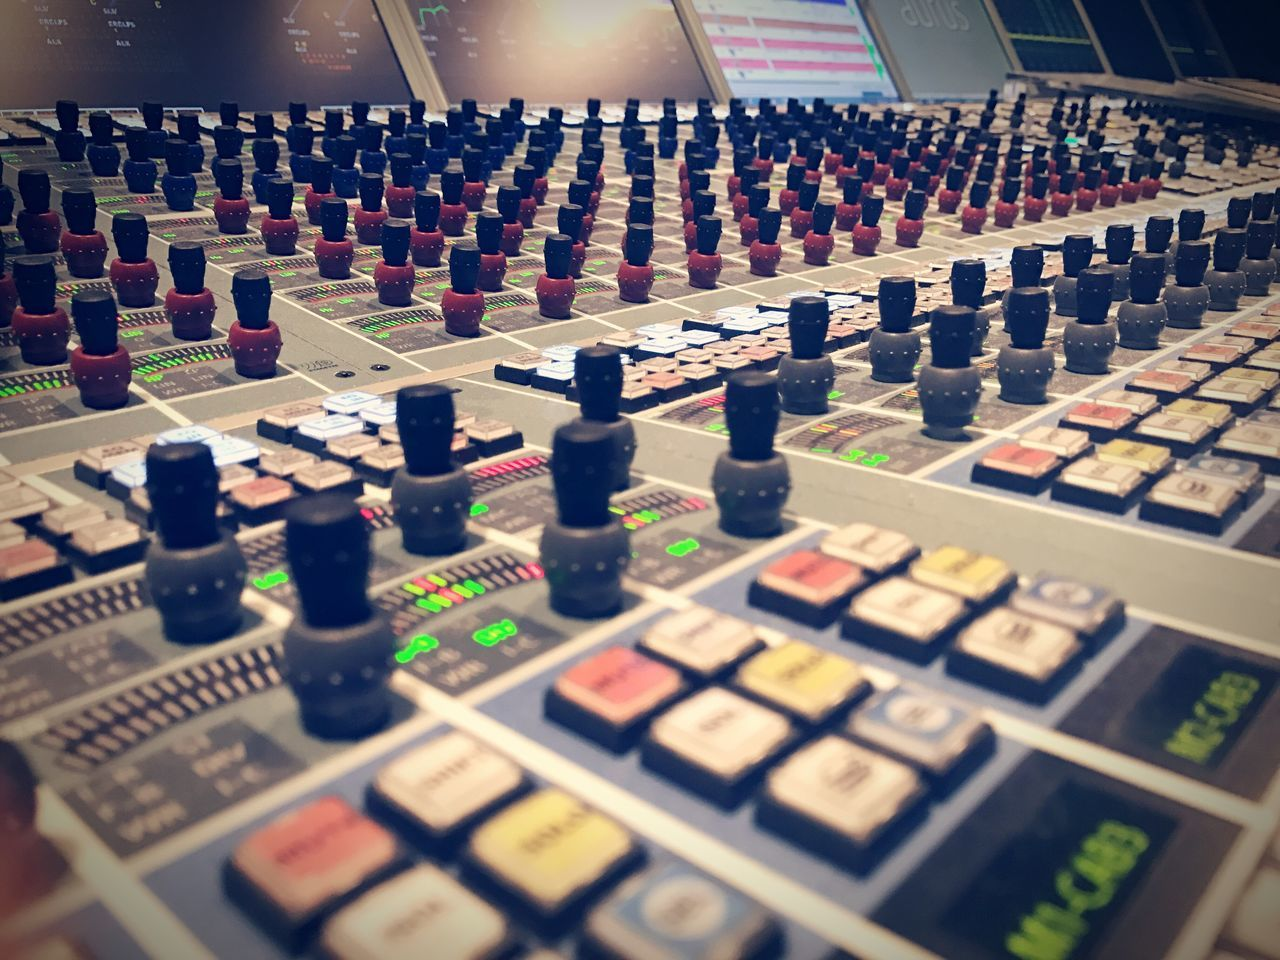 sound mixer, sound recording equipment, control panel, control, indoors, recording studio, technology, mixing, no people, music, multi colored, stereo, close-up, day, radio station